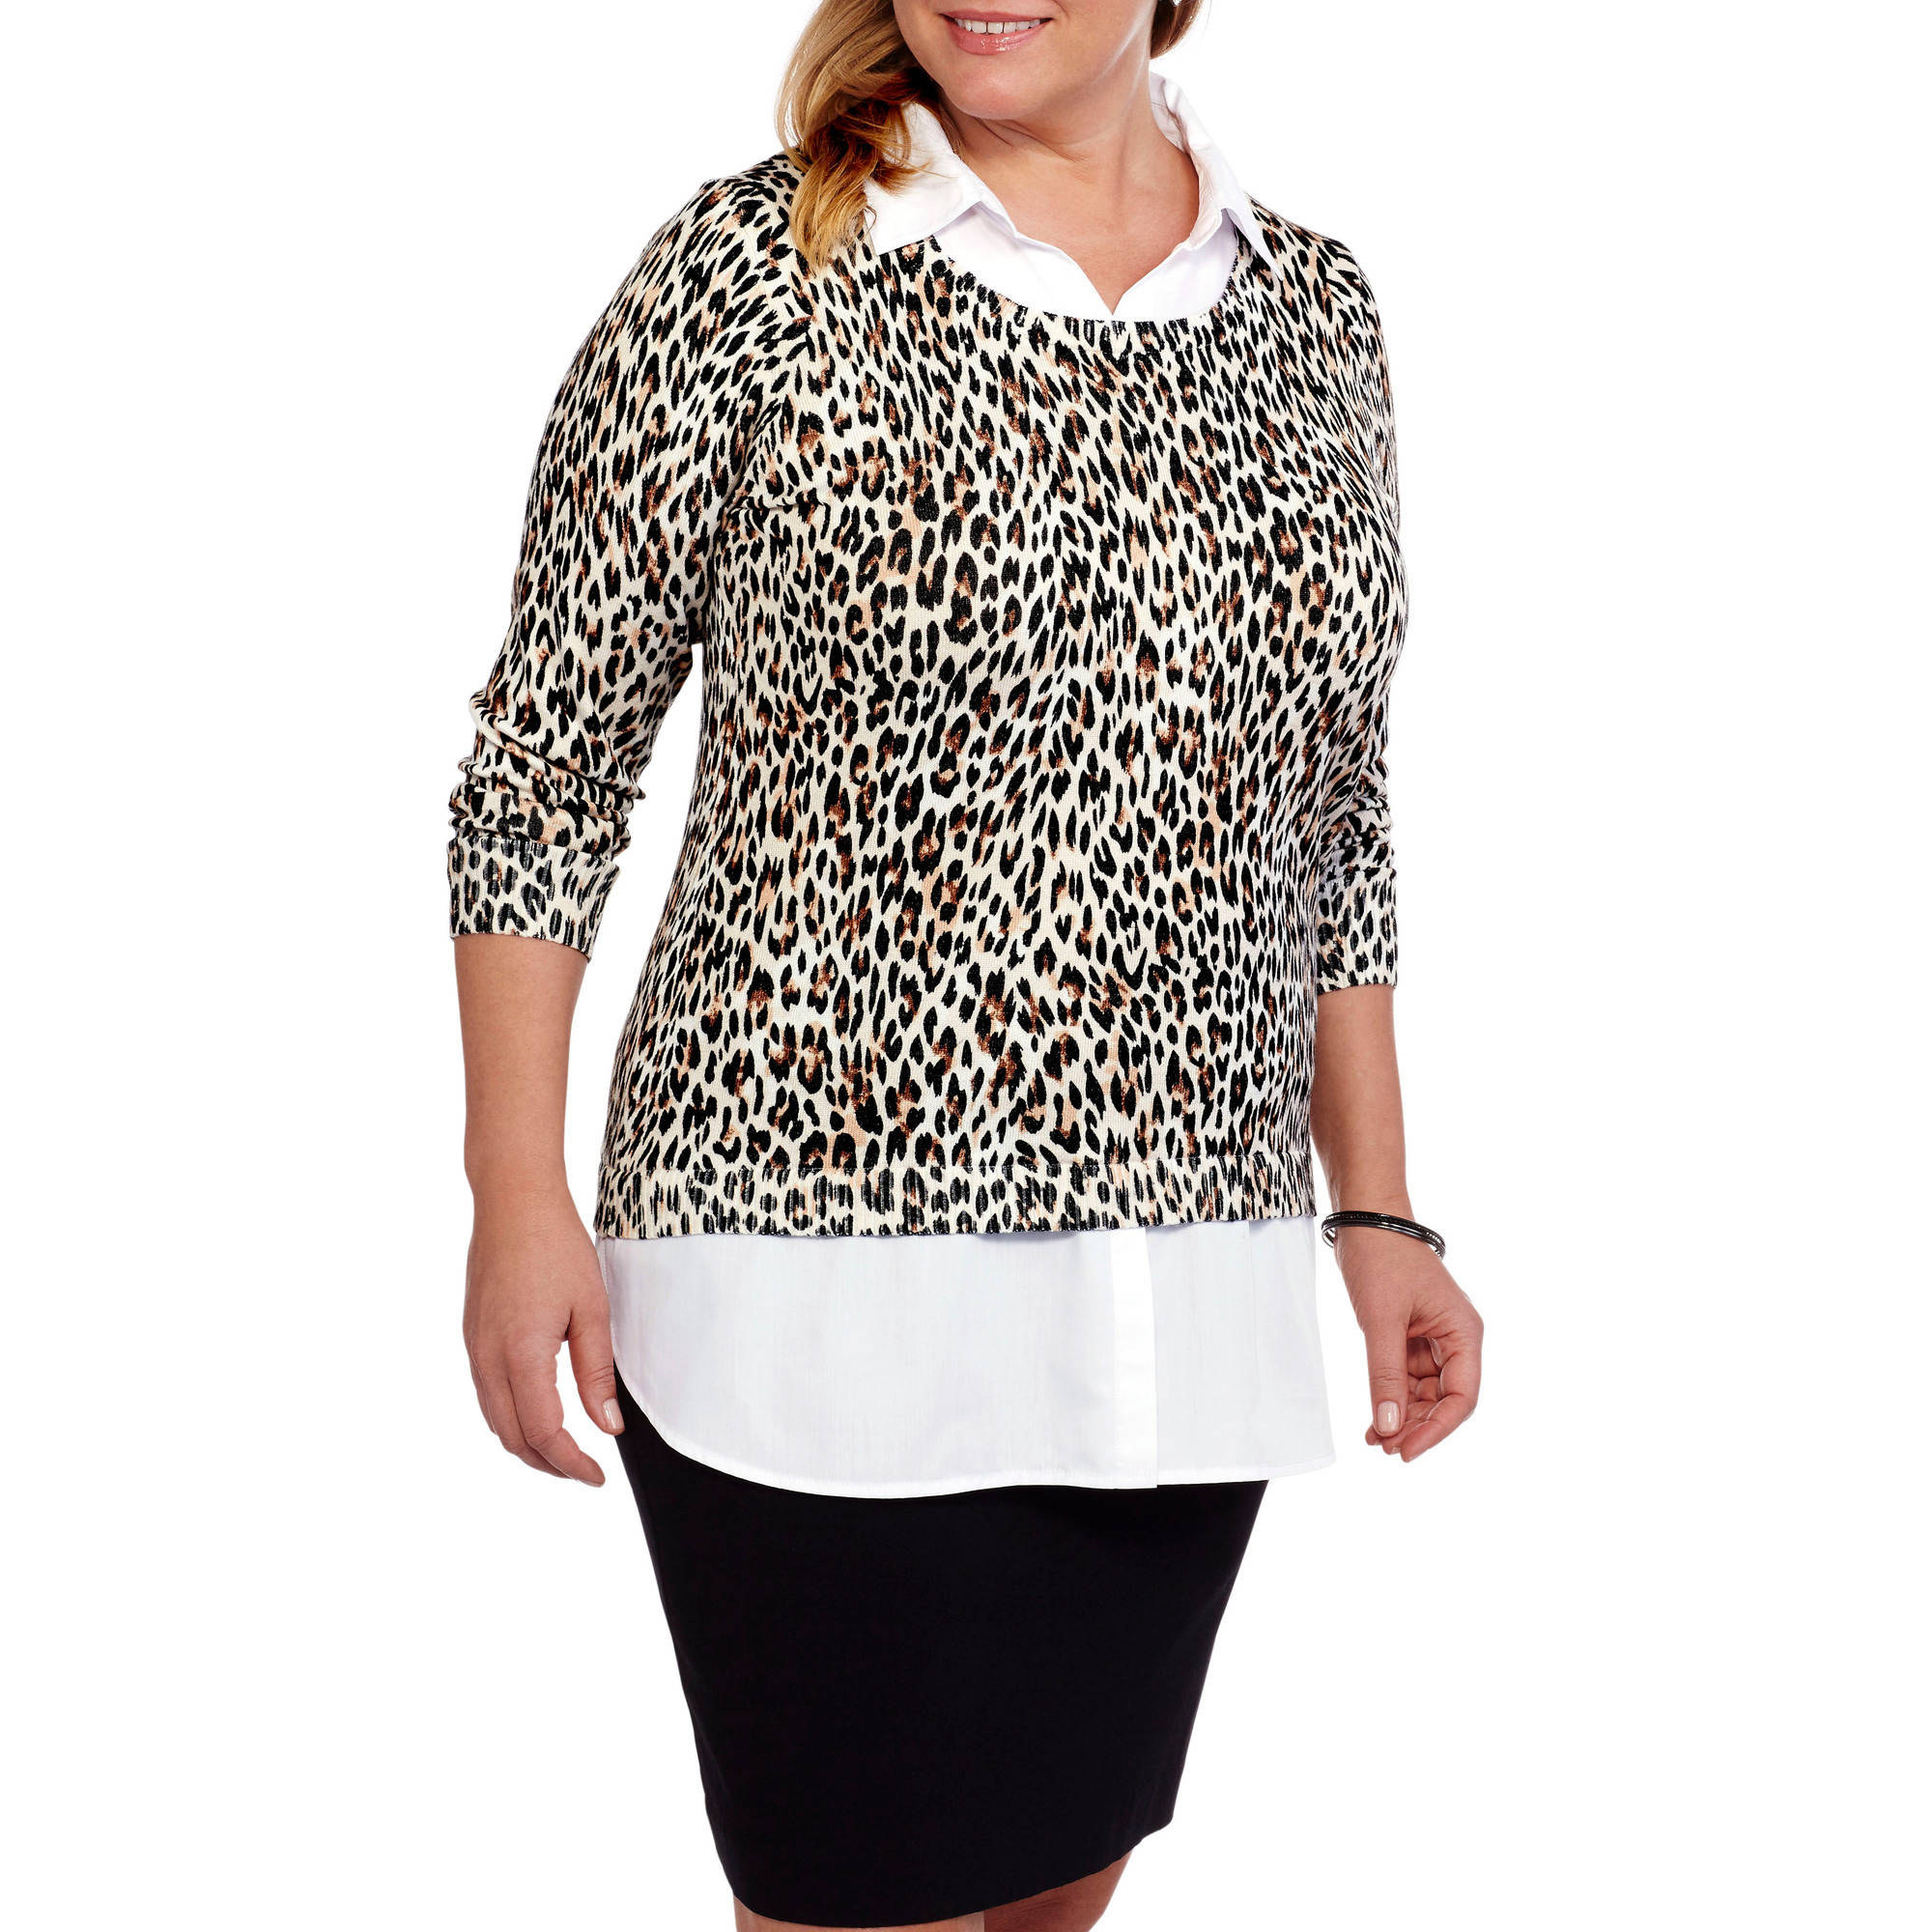 Faded Glory Women's Plus Twofer Sweater with Built in Collared Shirt